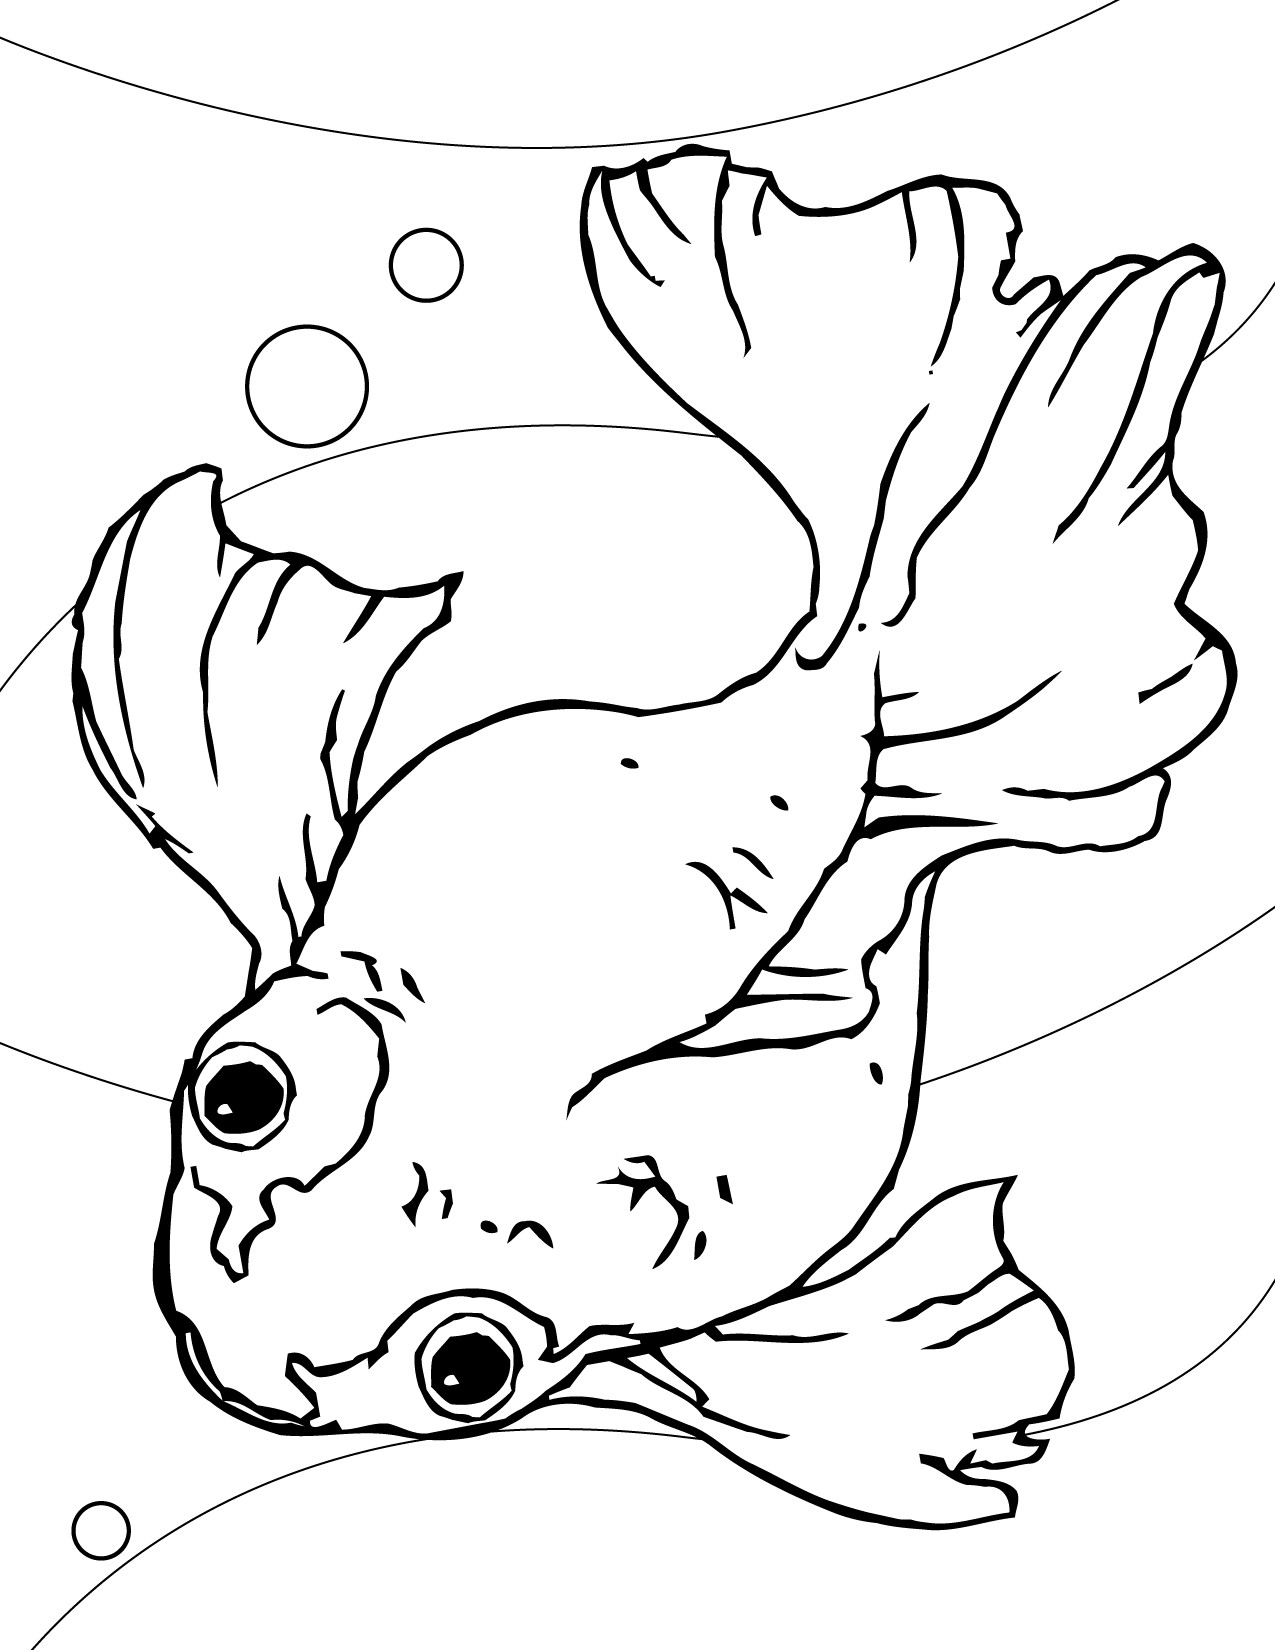 Online Coloring Sheets For Kids  Free Printable Goldfish Coloring Pages For Kids